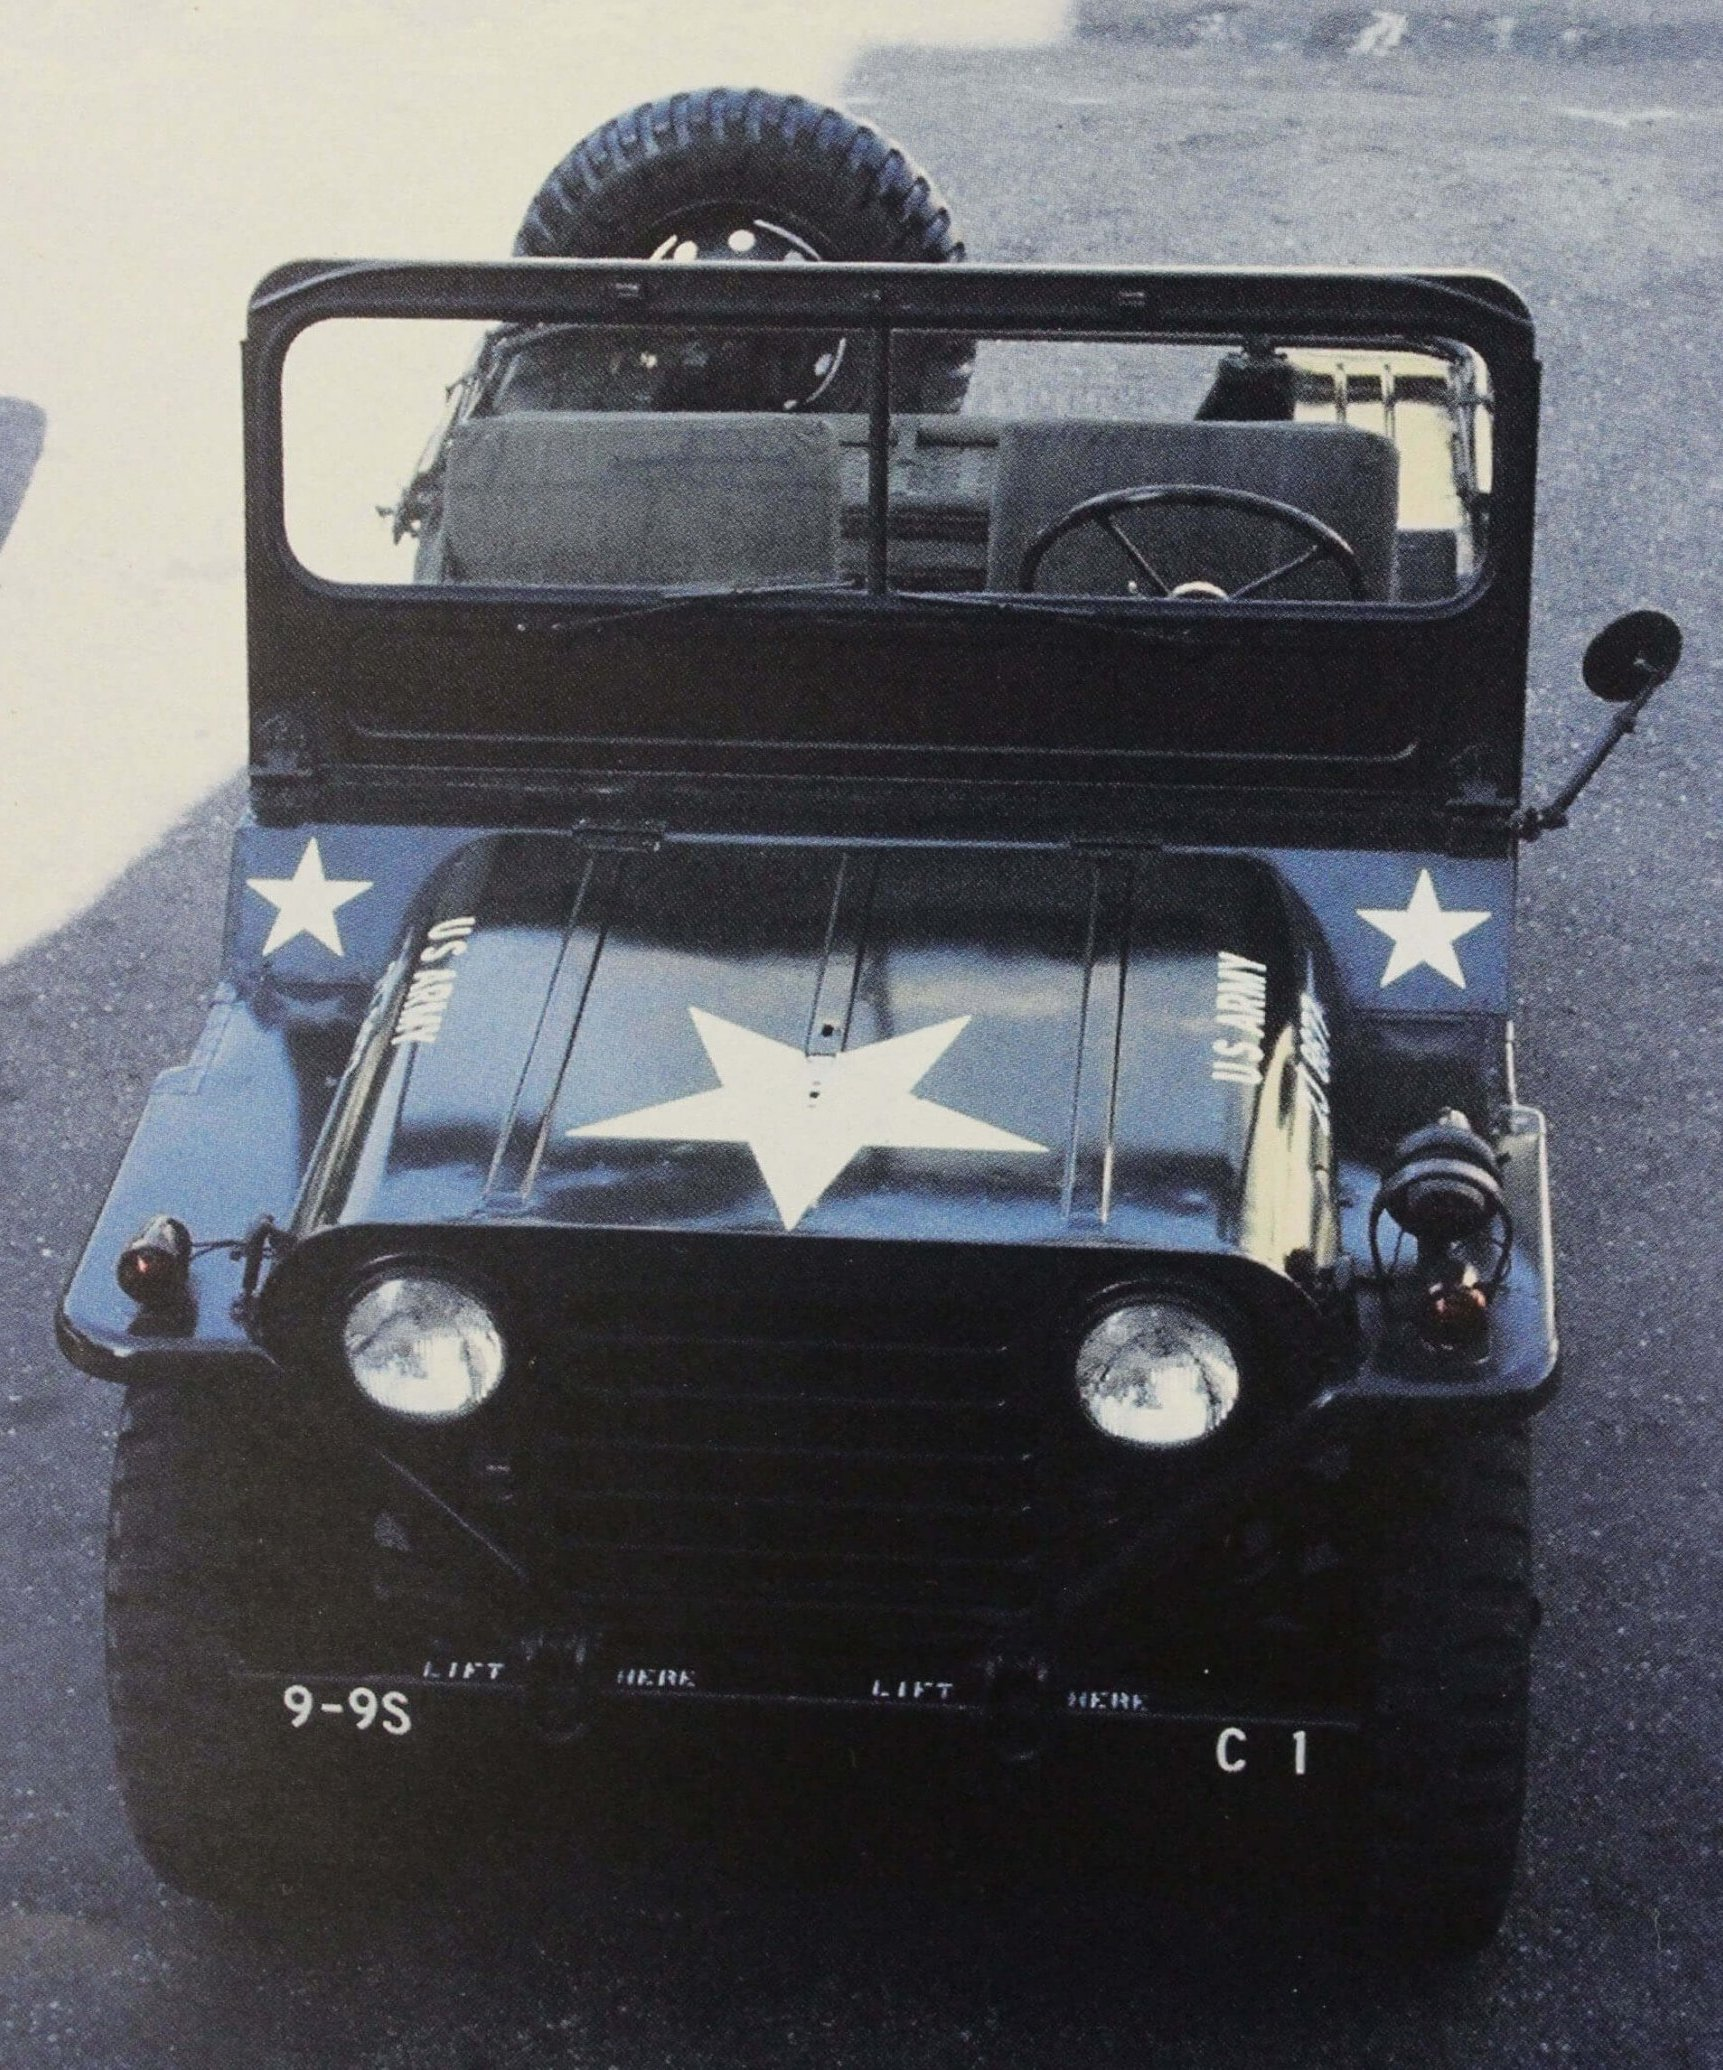 A black Army jeep with three white stars painted on it.